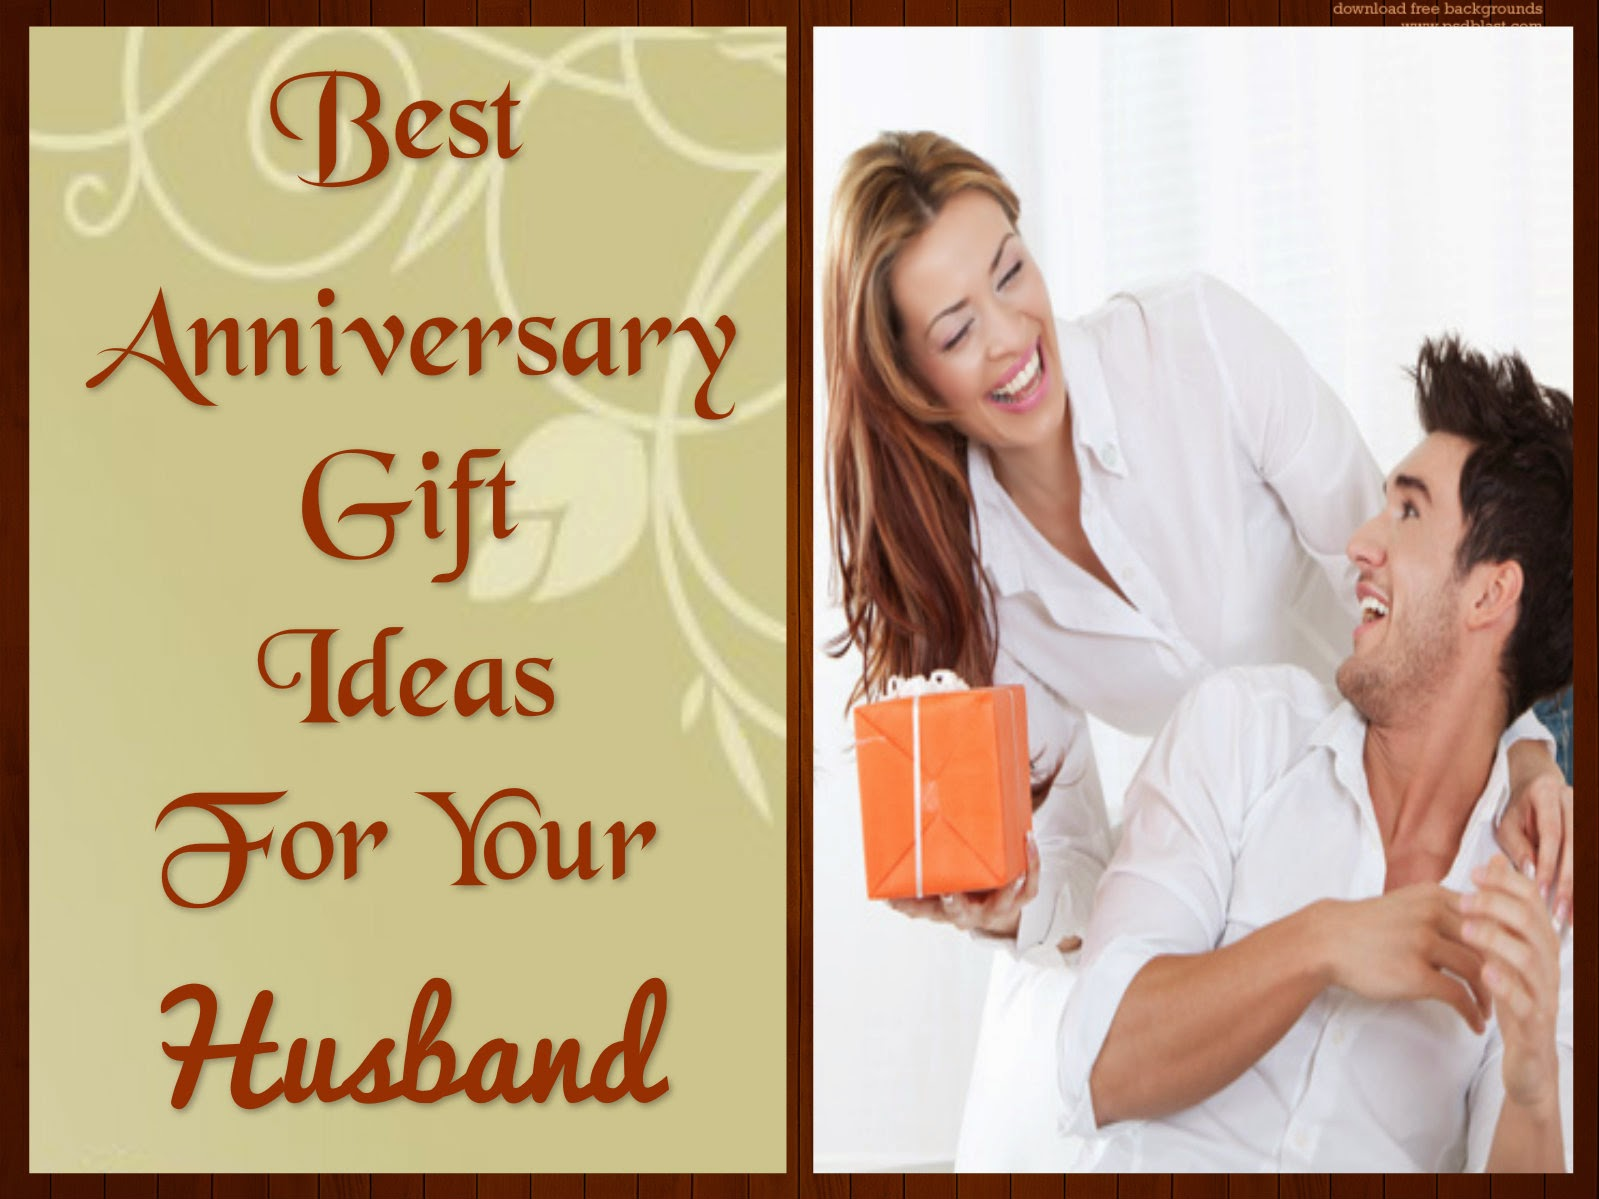 Wedding Anniversary Ideas For Your Husband : Wedding Anniversary Gifts: Best Anniversary Gift Ideas For Your ...